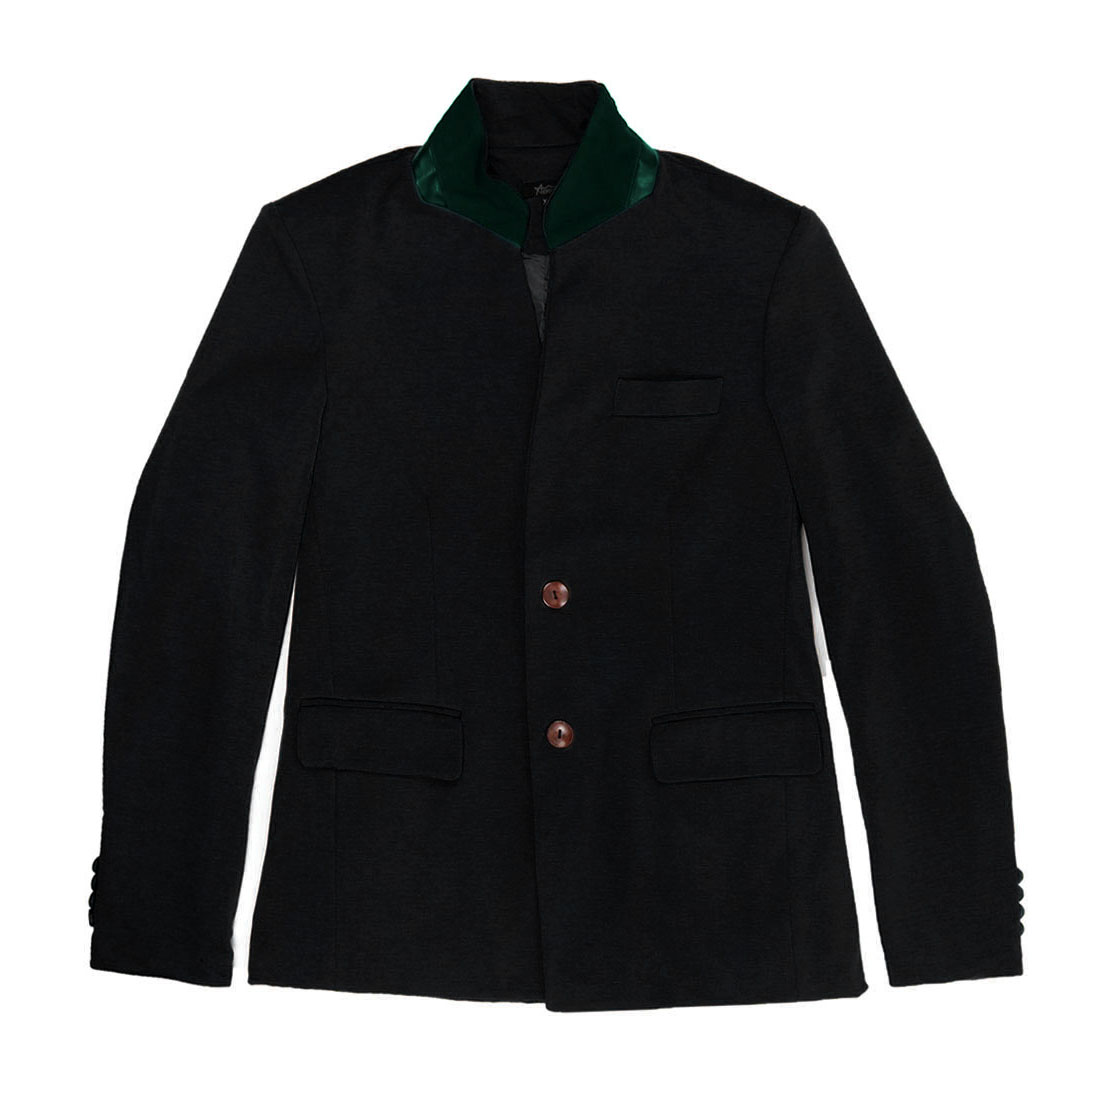 Men's Warm Mandarin Collar Pockets Two Button Design Black M Blazer Jacket